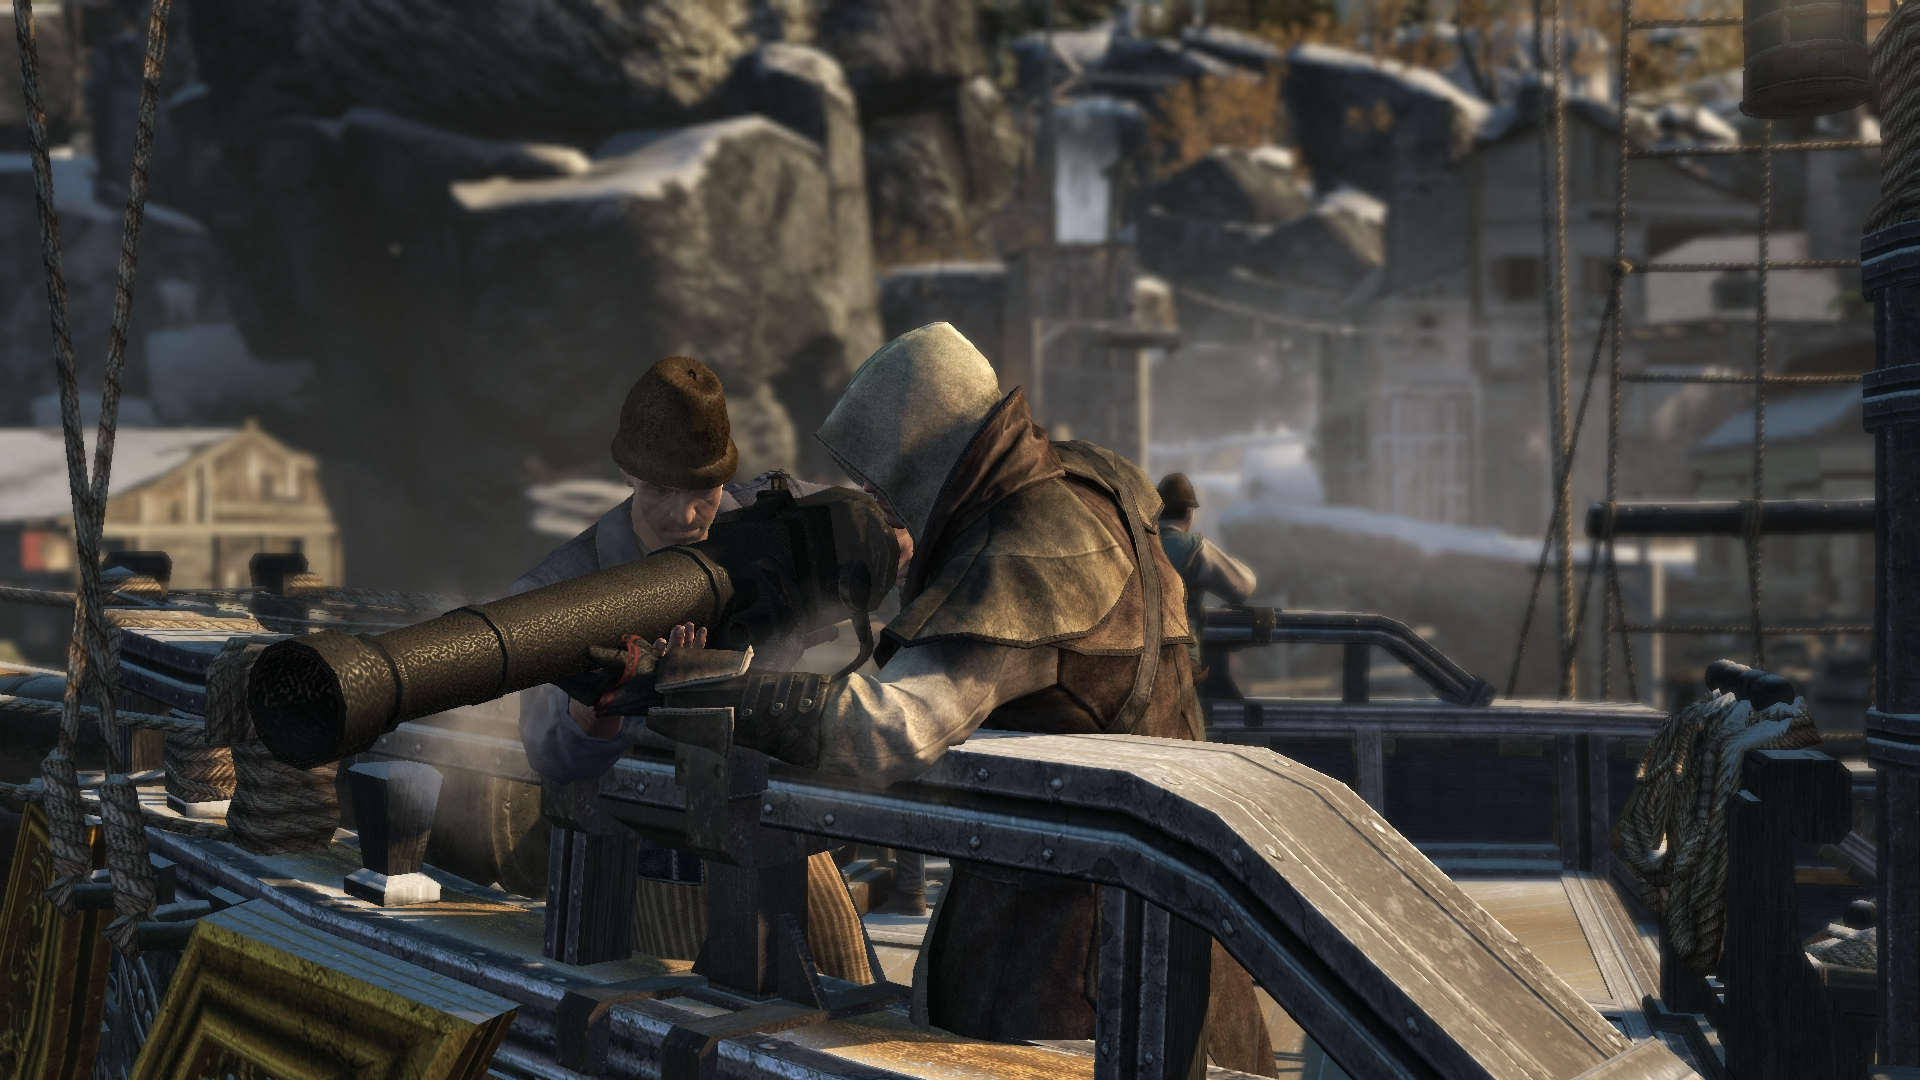 Mortars On Ships : Puckle gun assassin s creed wiki fandom powered by wikia